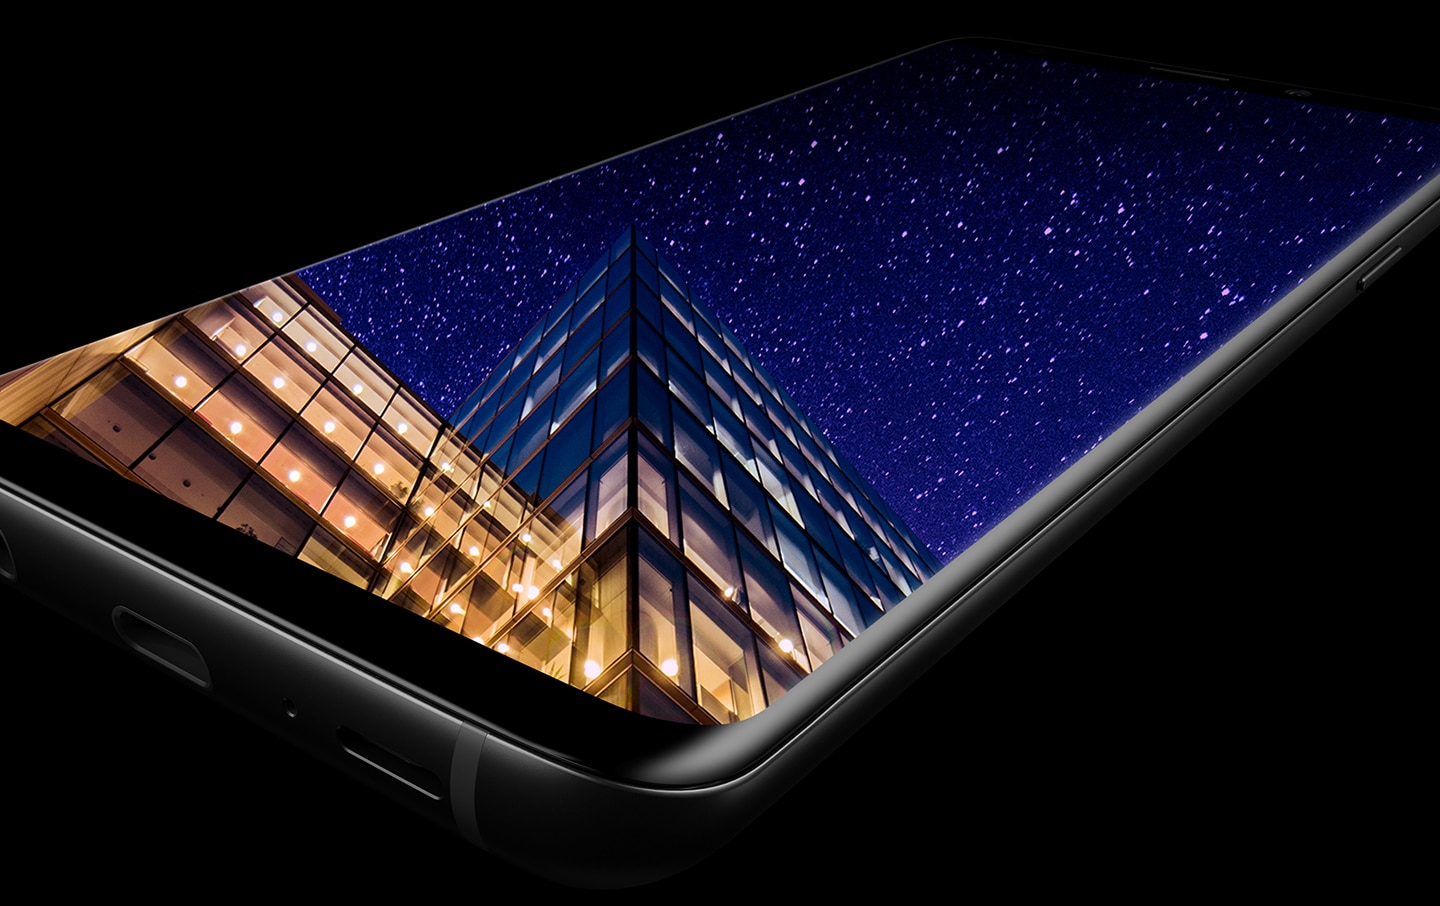 Galaxy S9 or S9+ laying flat to show the Infinity Display with an image on-screen